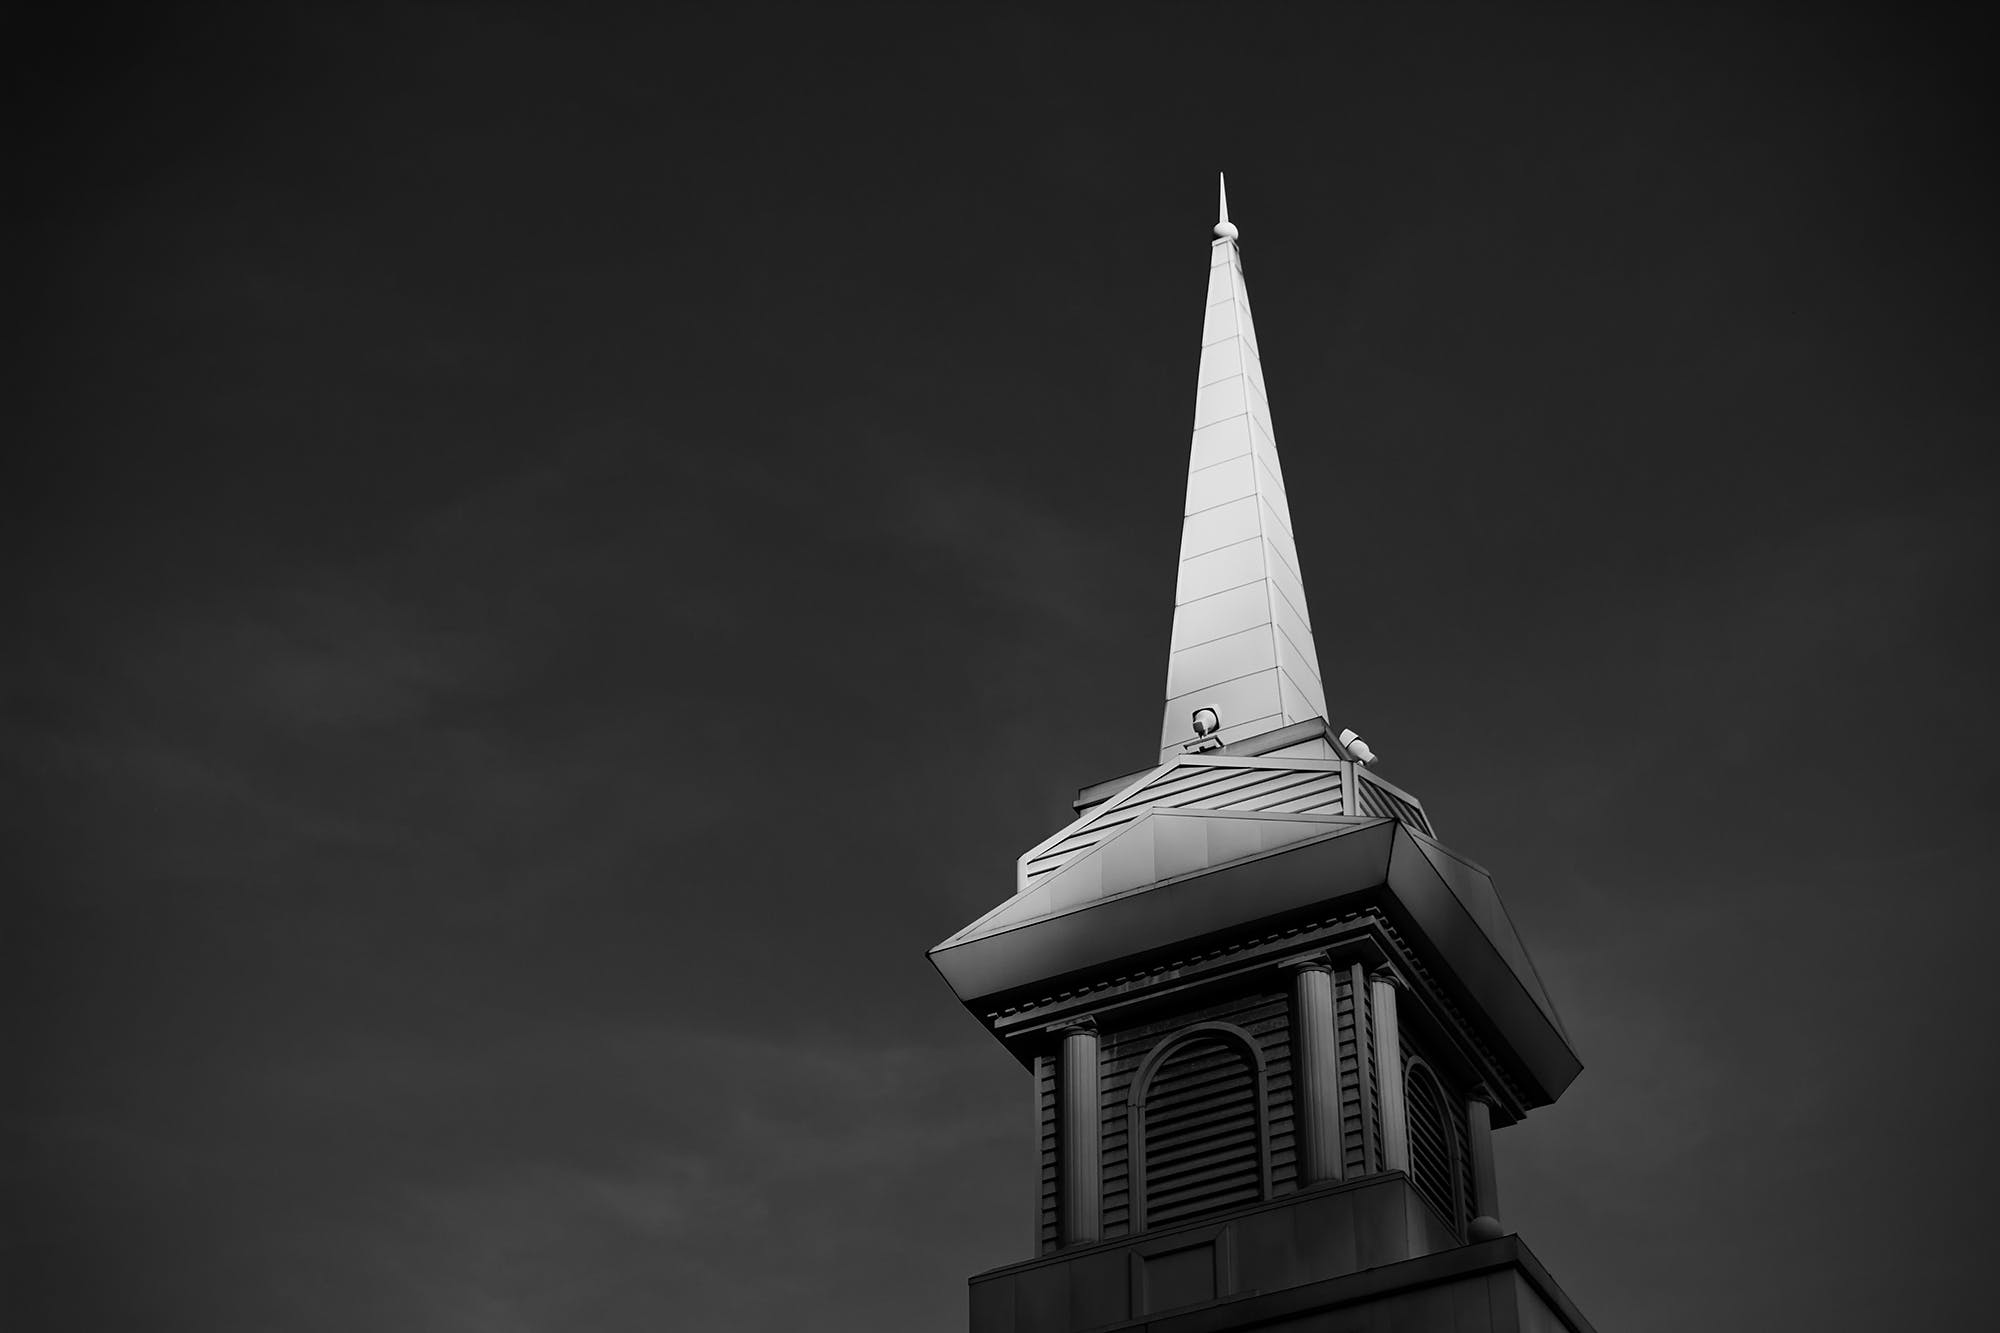 Grayscale Photo of Tower